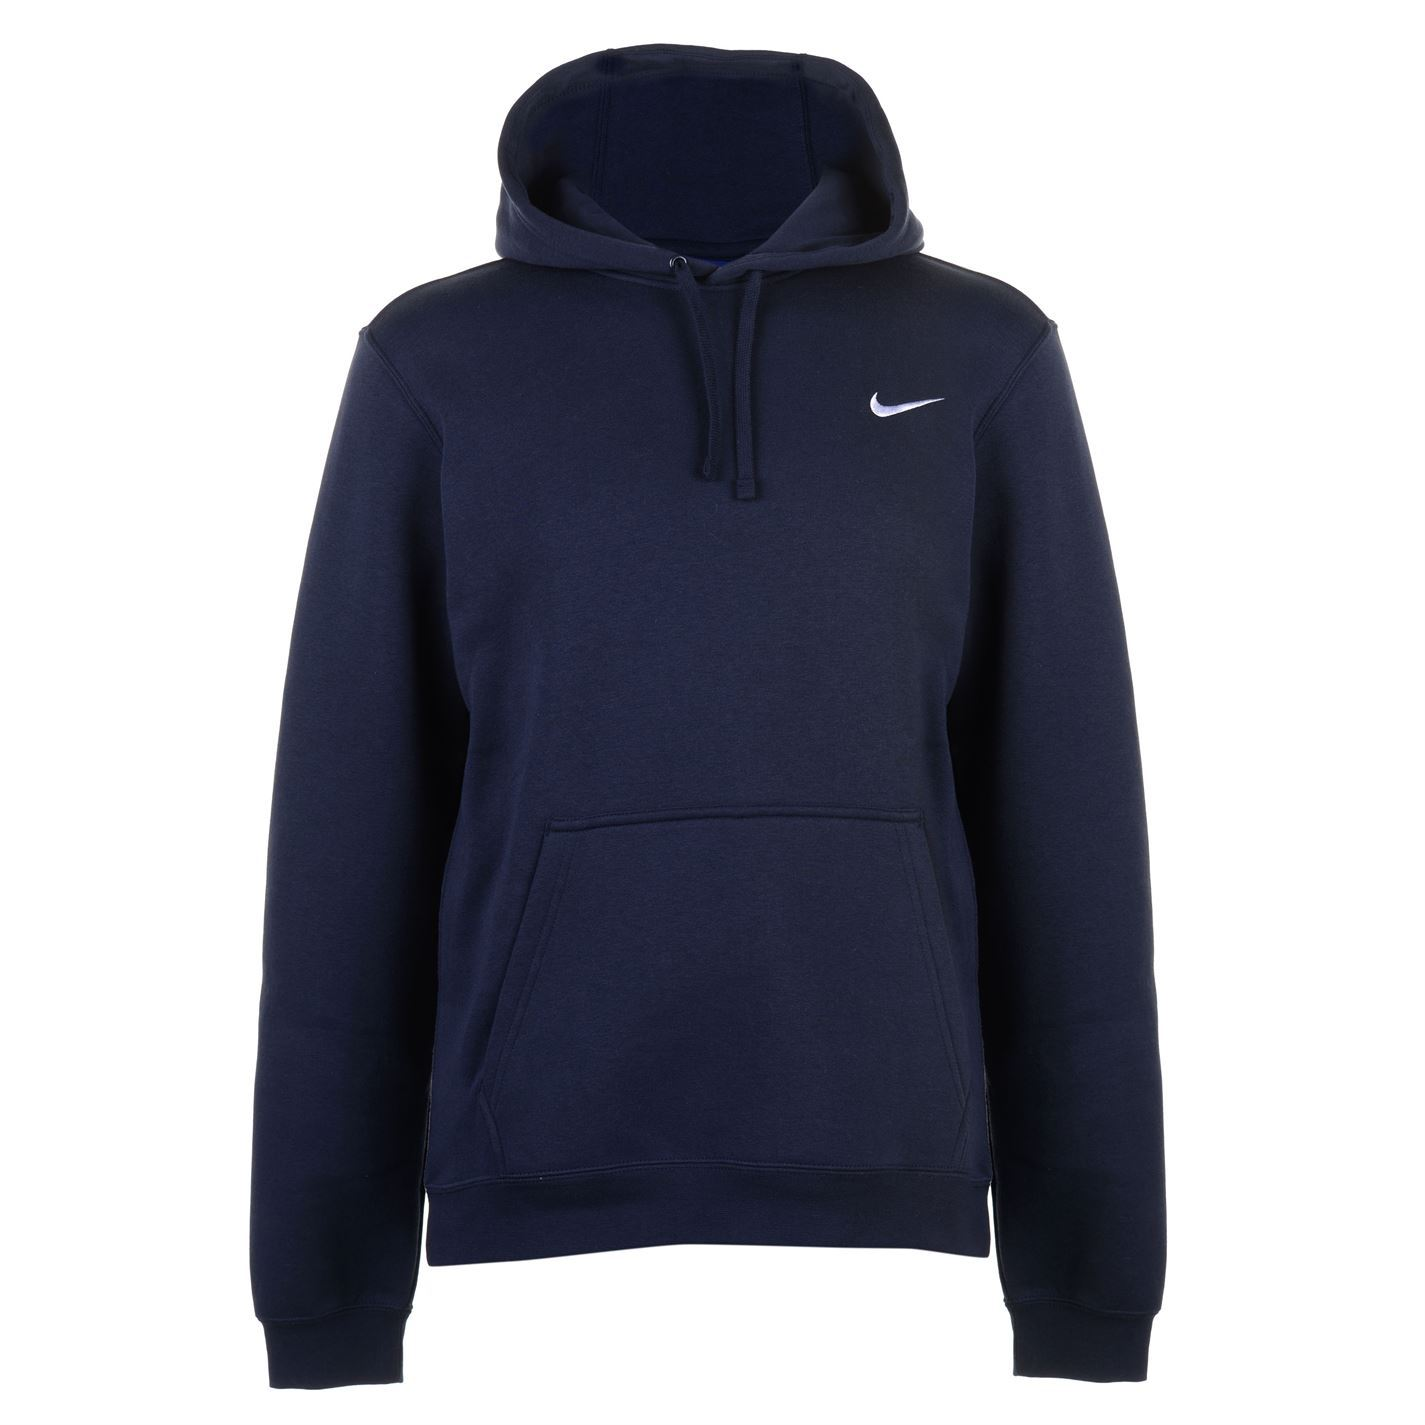 Nike-Fundamentals-Fleece-Lined-Pullover-Hoody-Mens-OTH-Hoodie-Sweatshirt-Sweater thumbnail 10